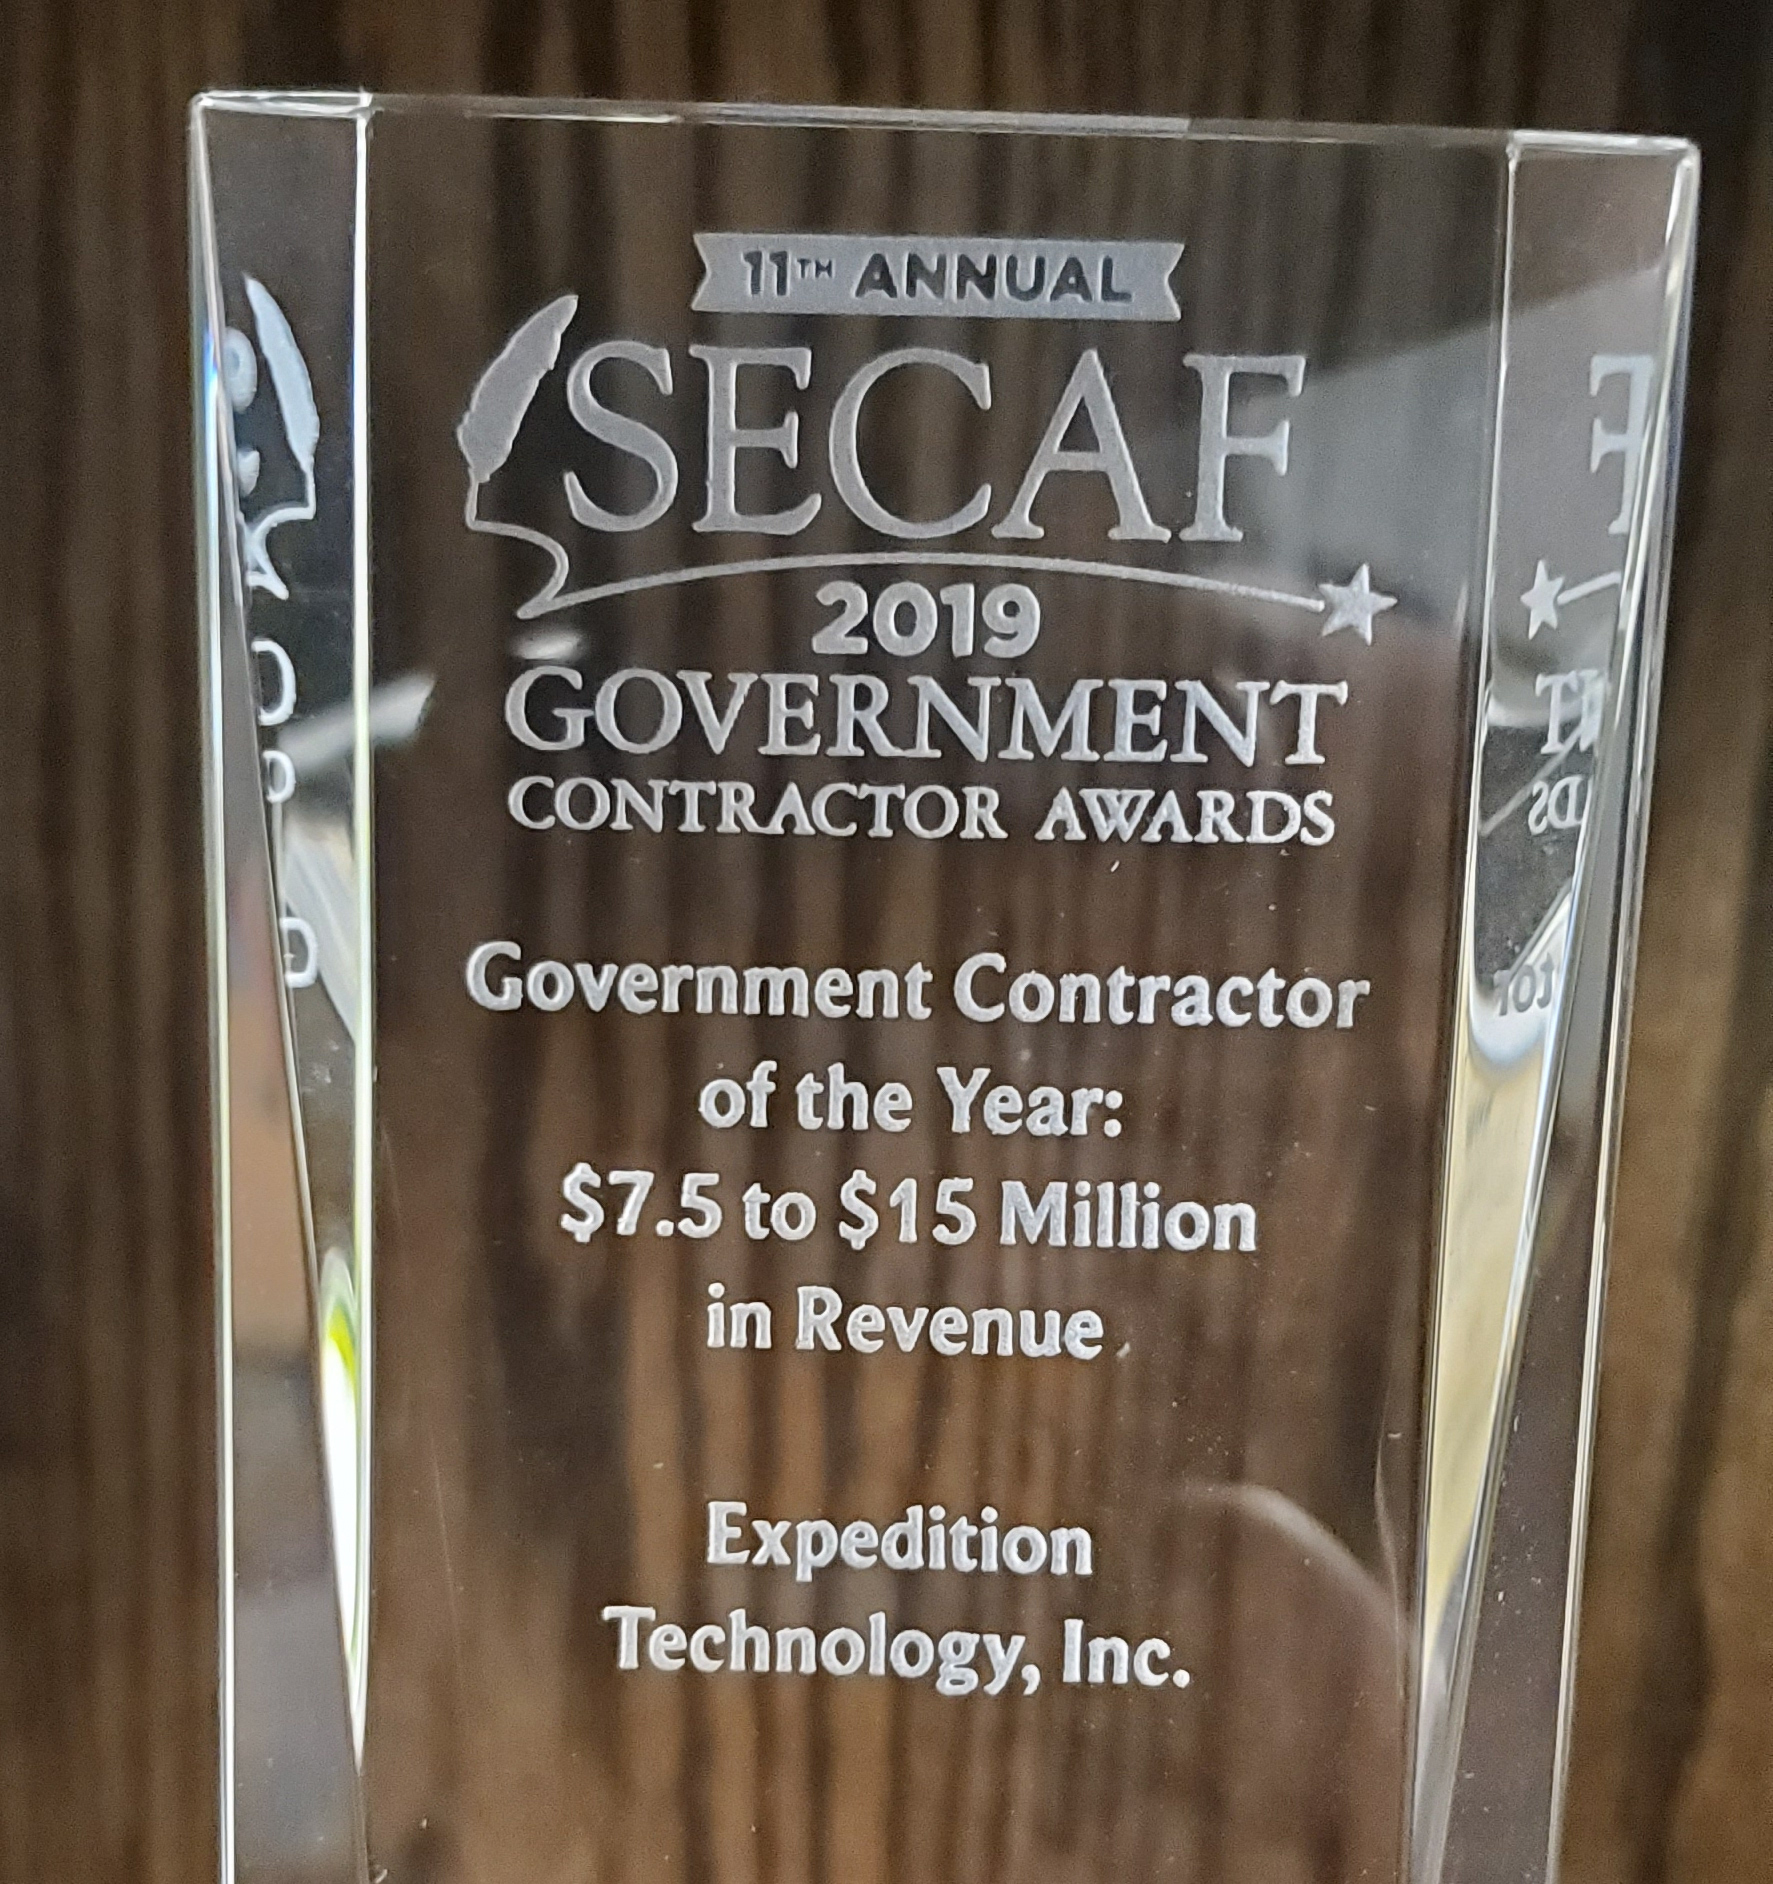 Expedition Technology wins Government Contractor of the Year